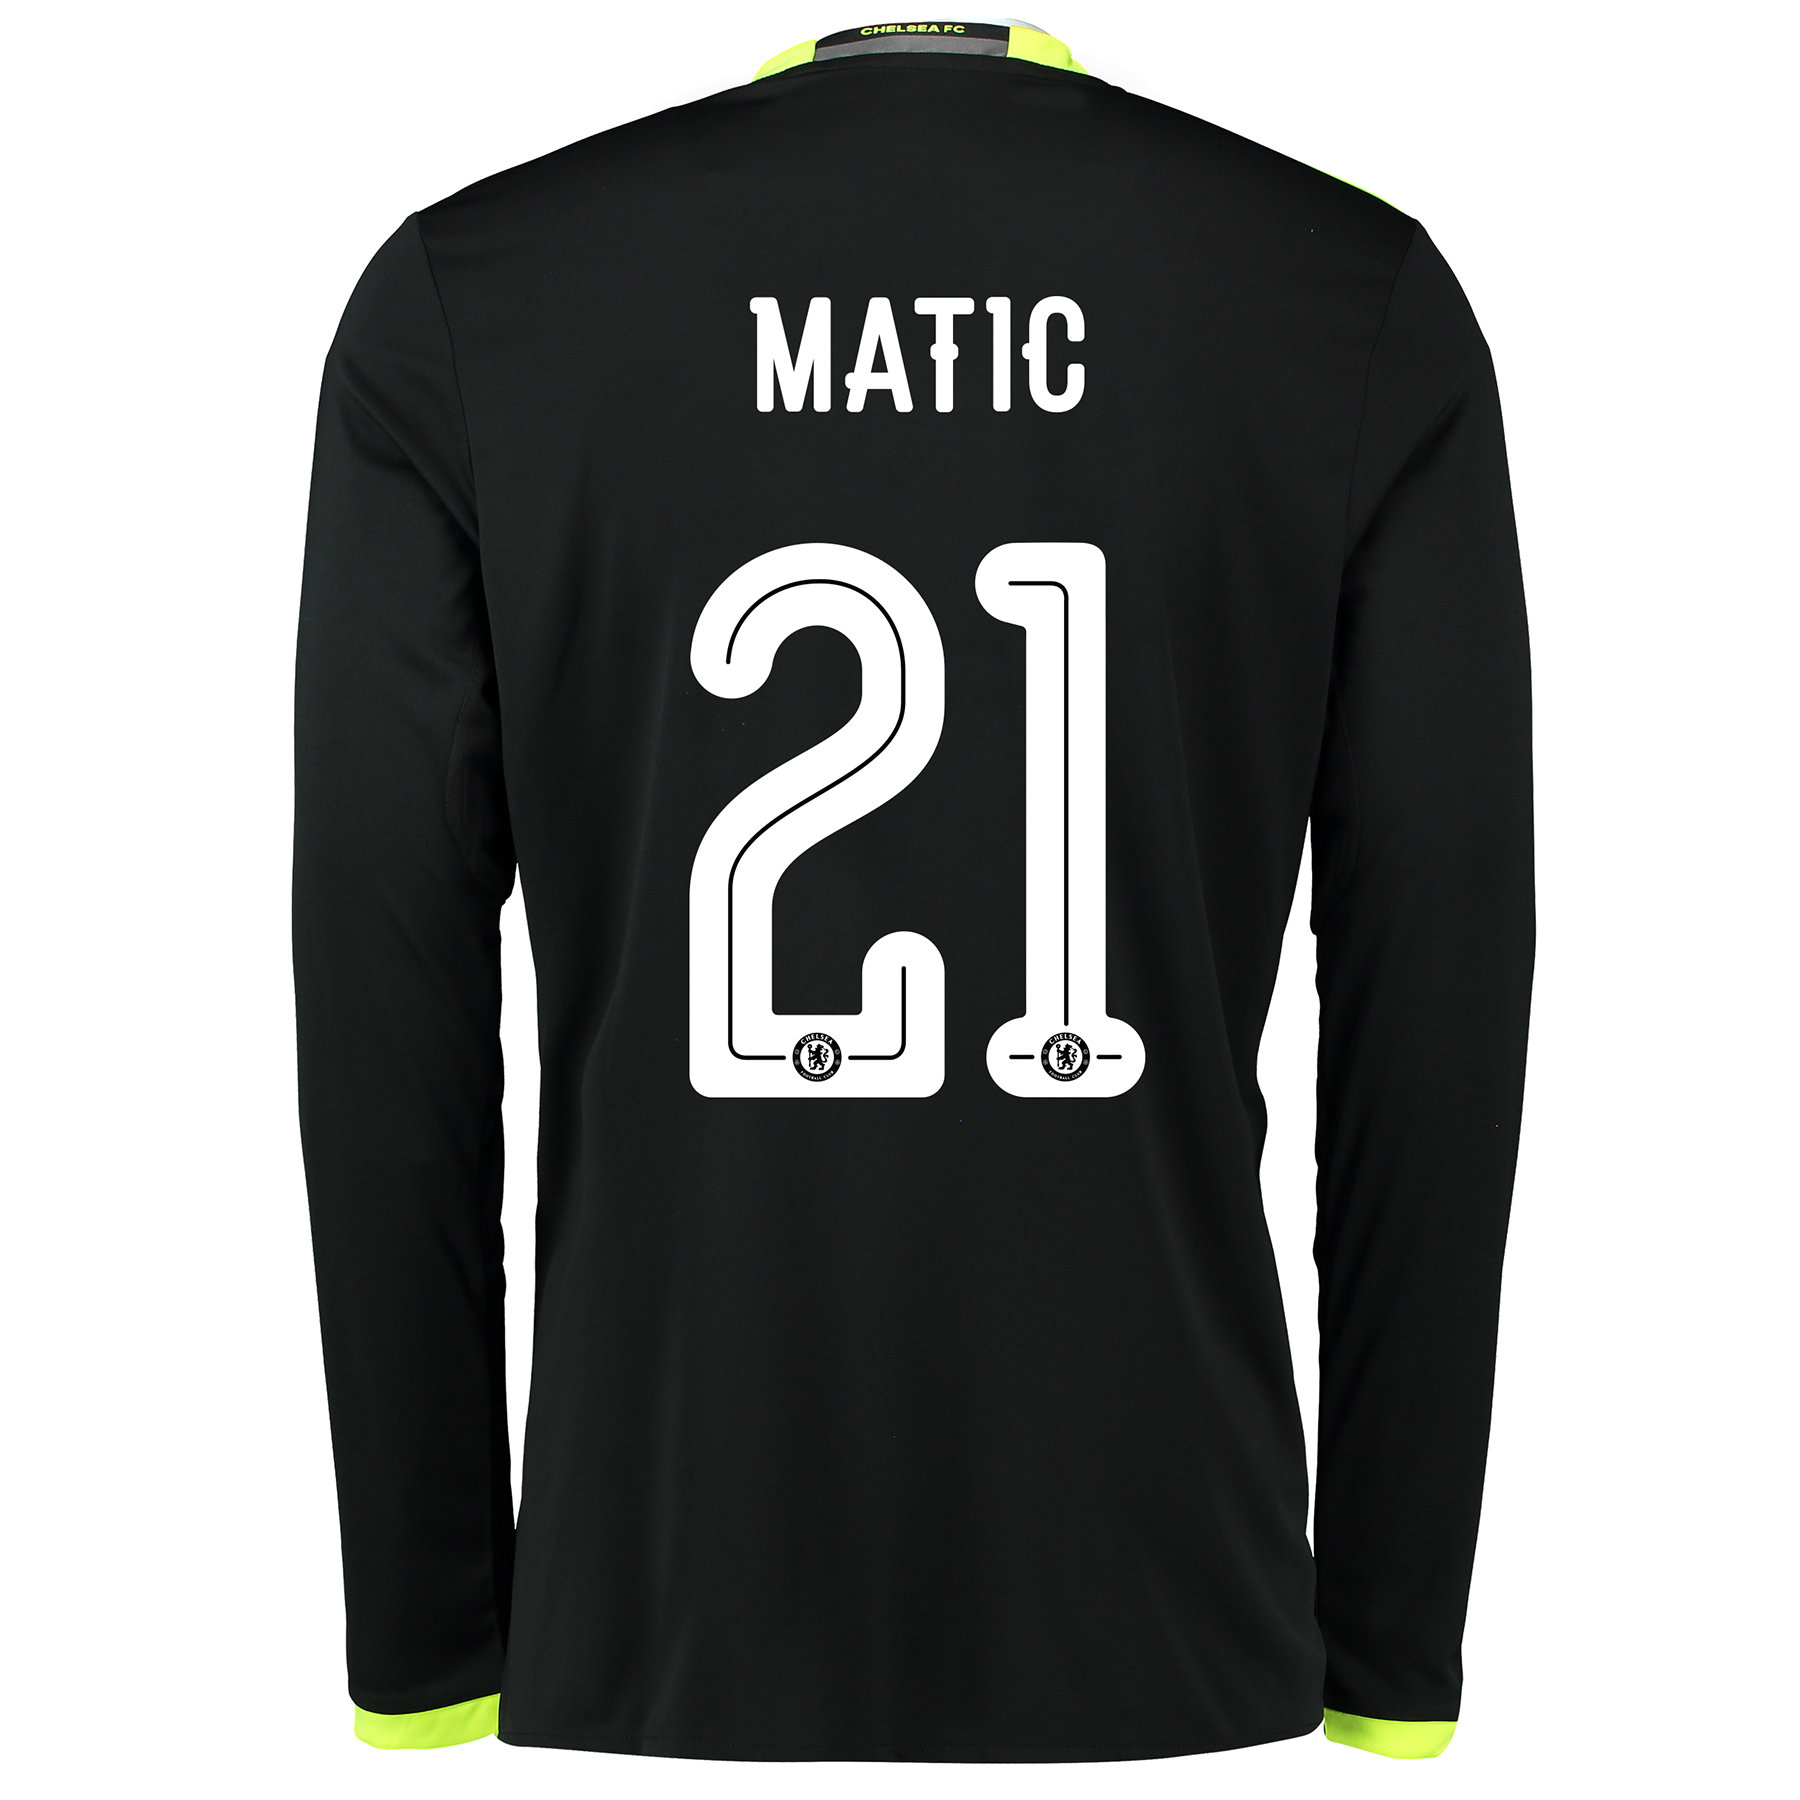 Chelsea Linear Away Shirt 16-17 - Long Sleeve with Matic 21 printing